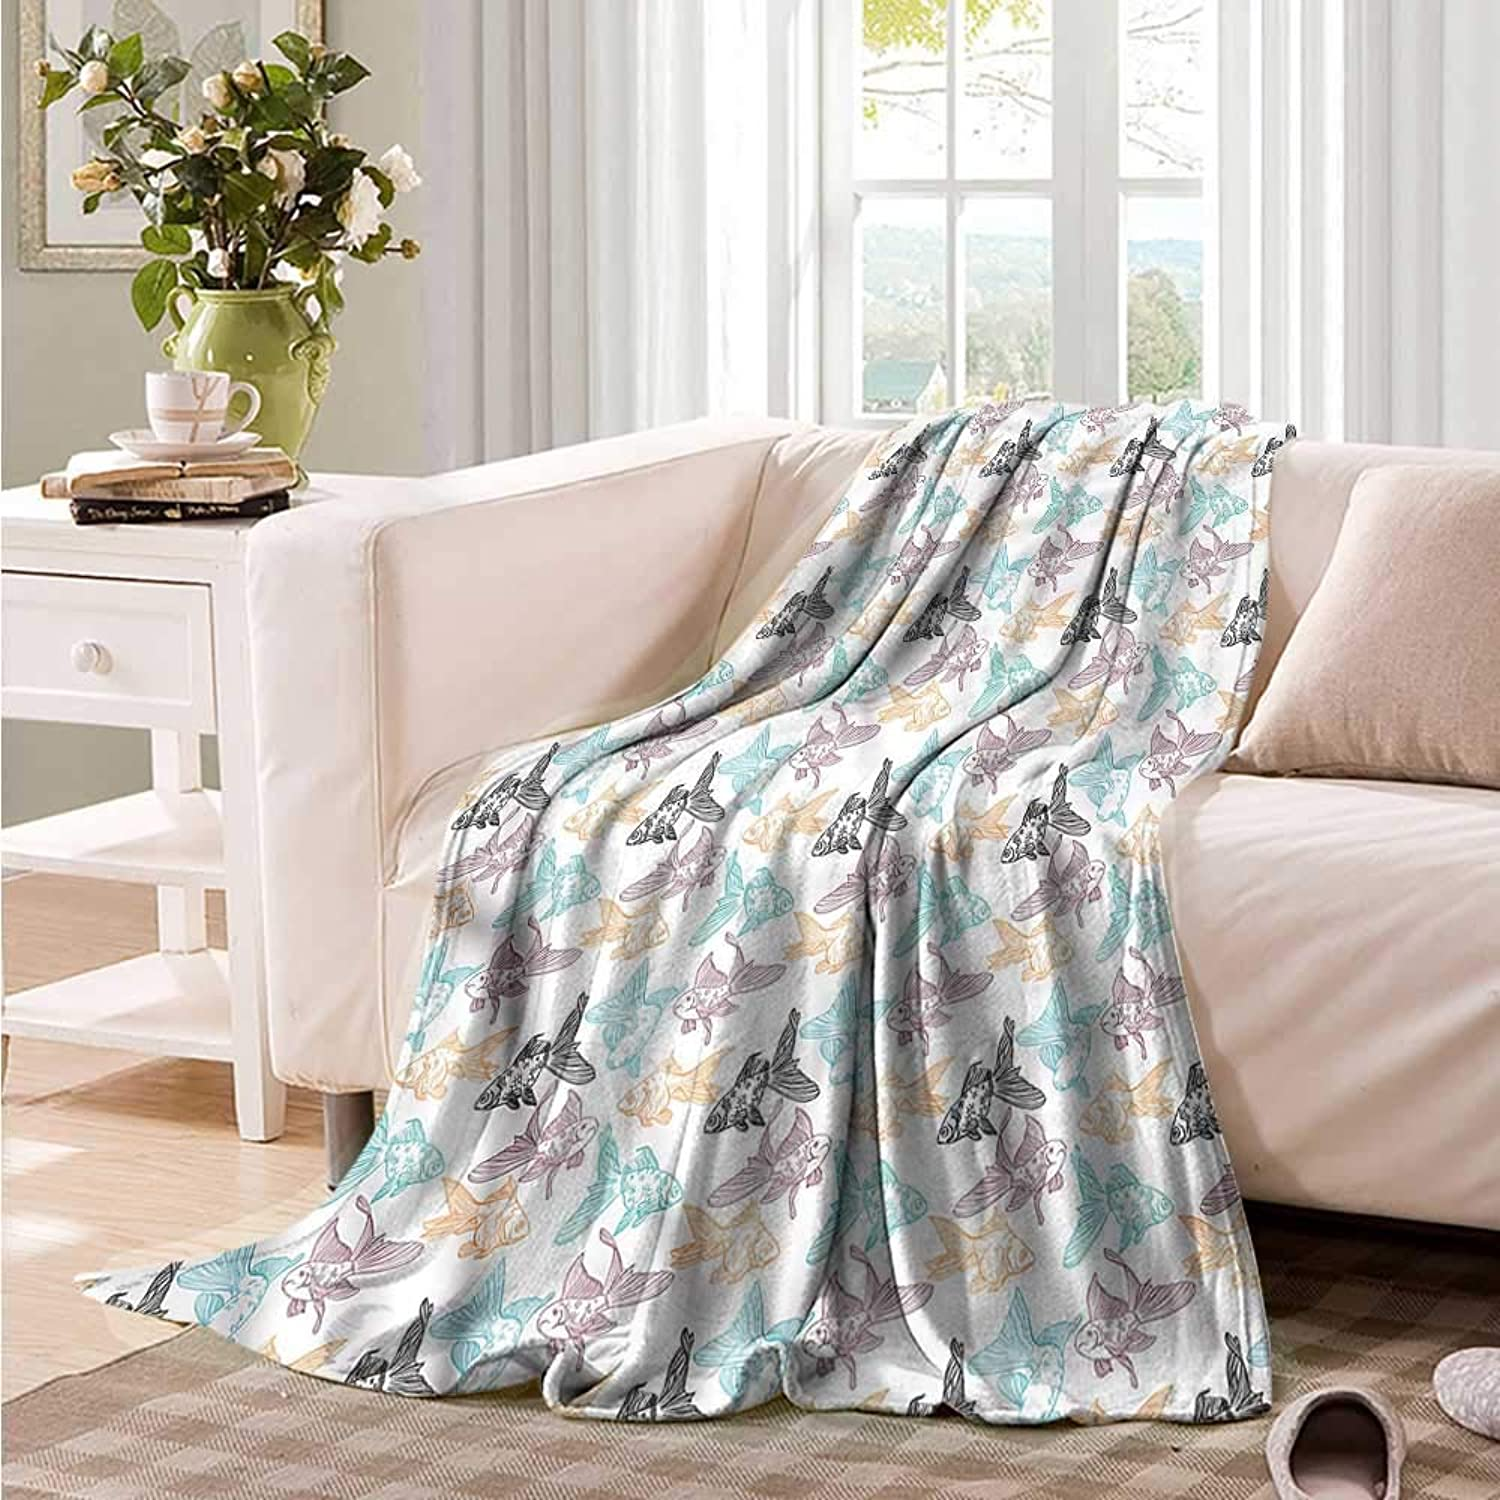 Perch and goldfish Aquarium Blanket Knee Oncegod Outline